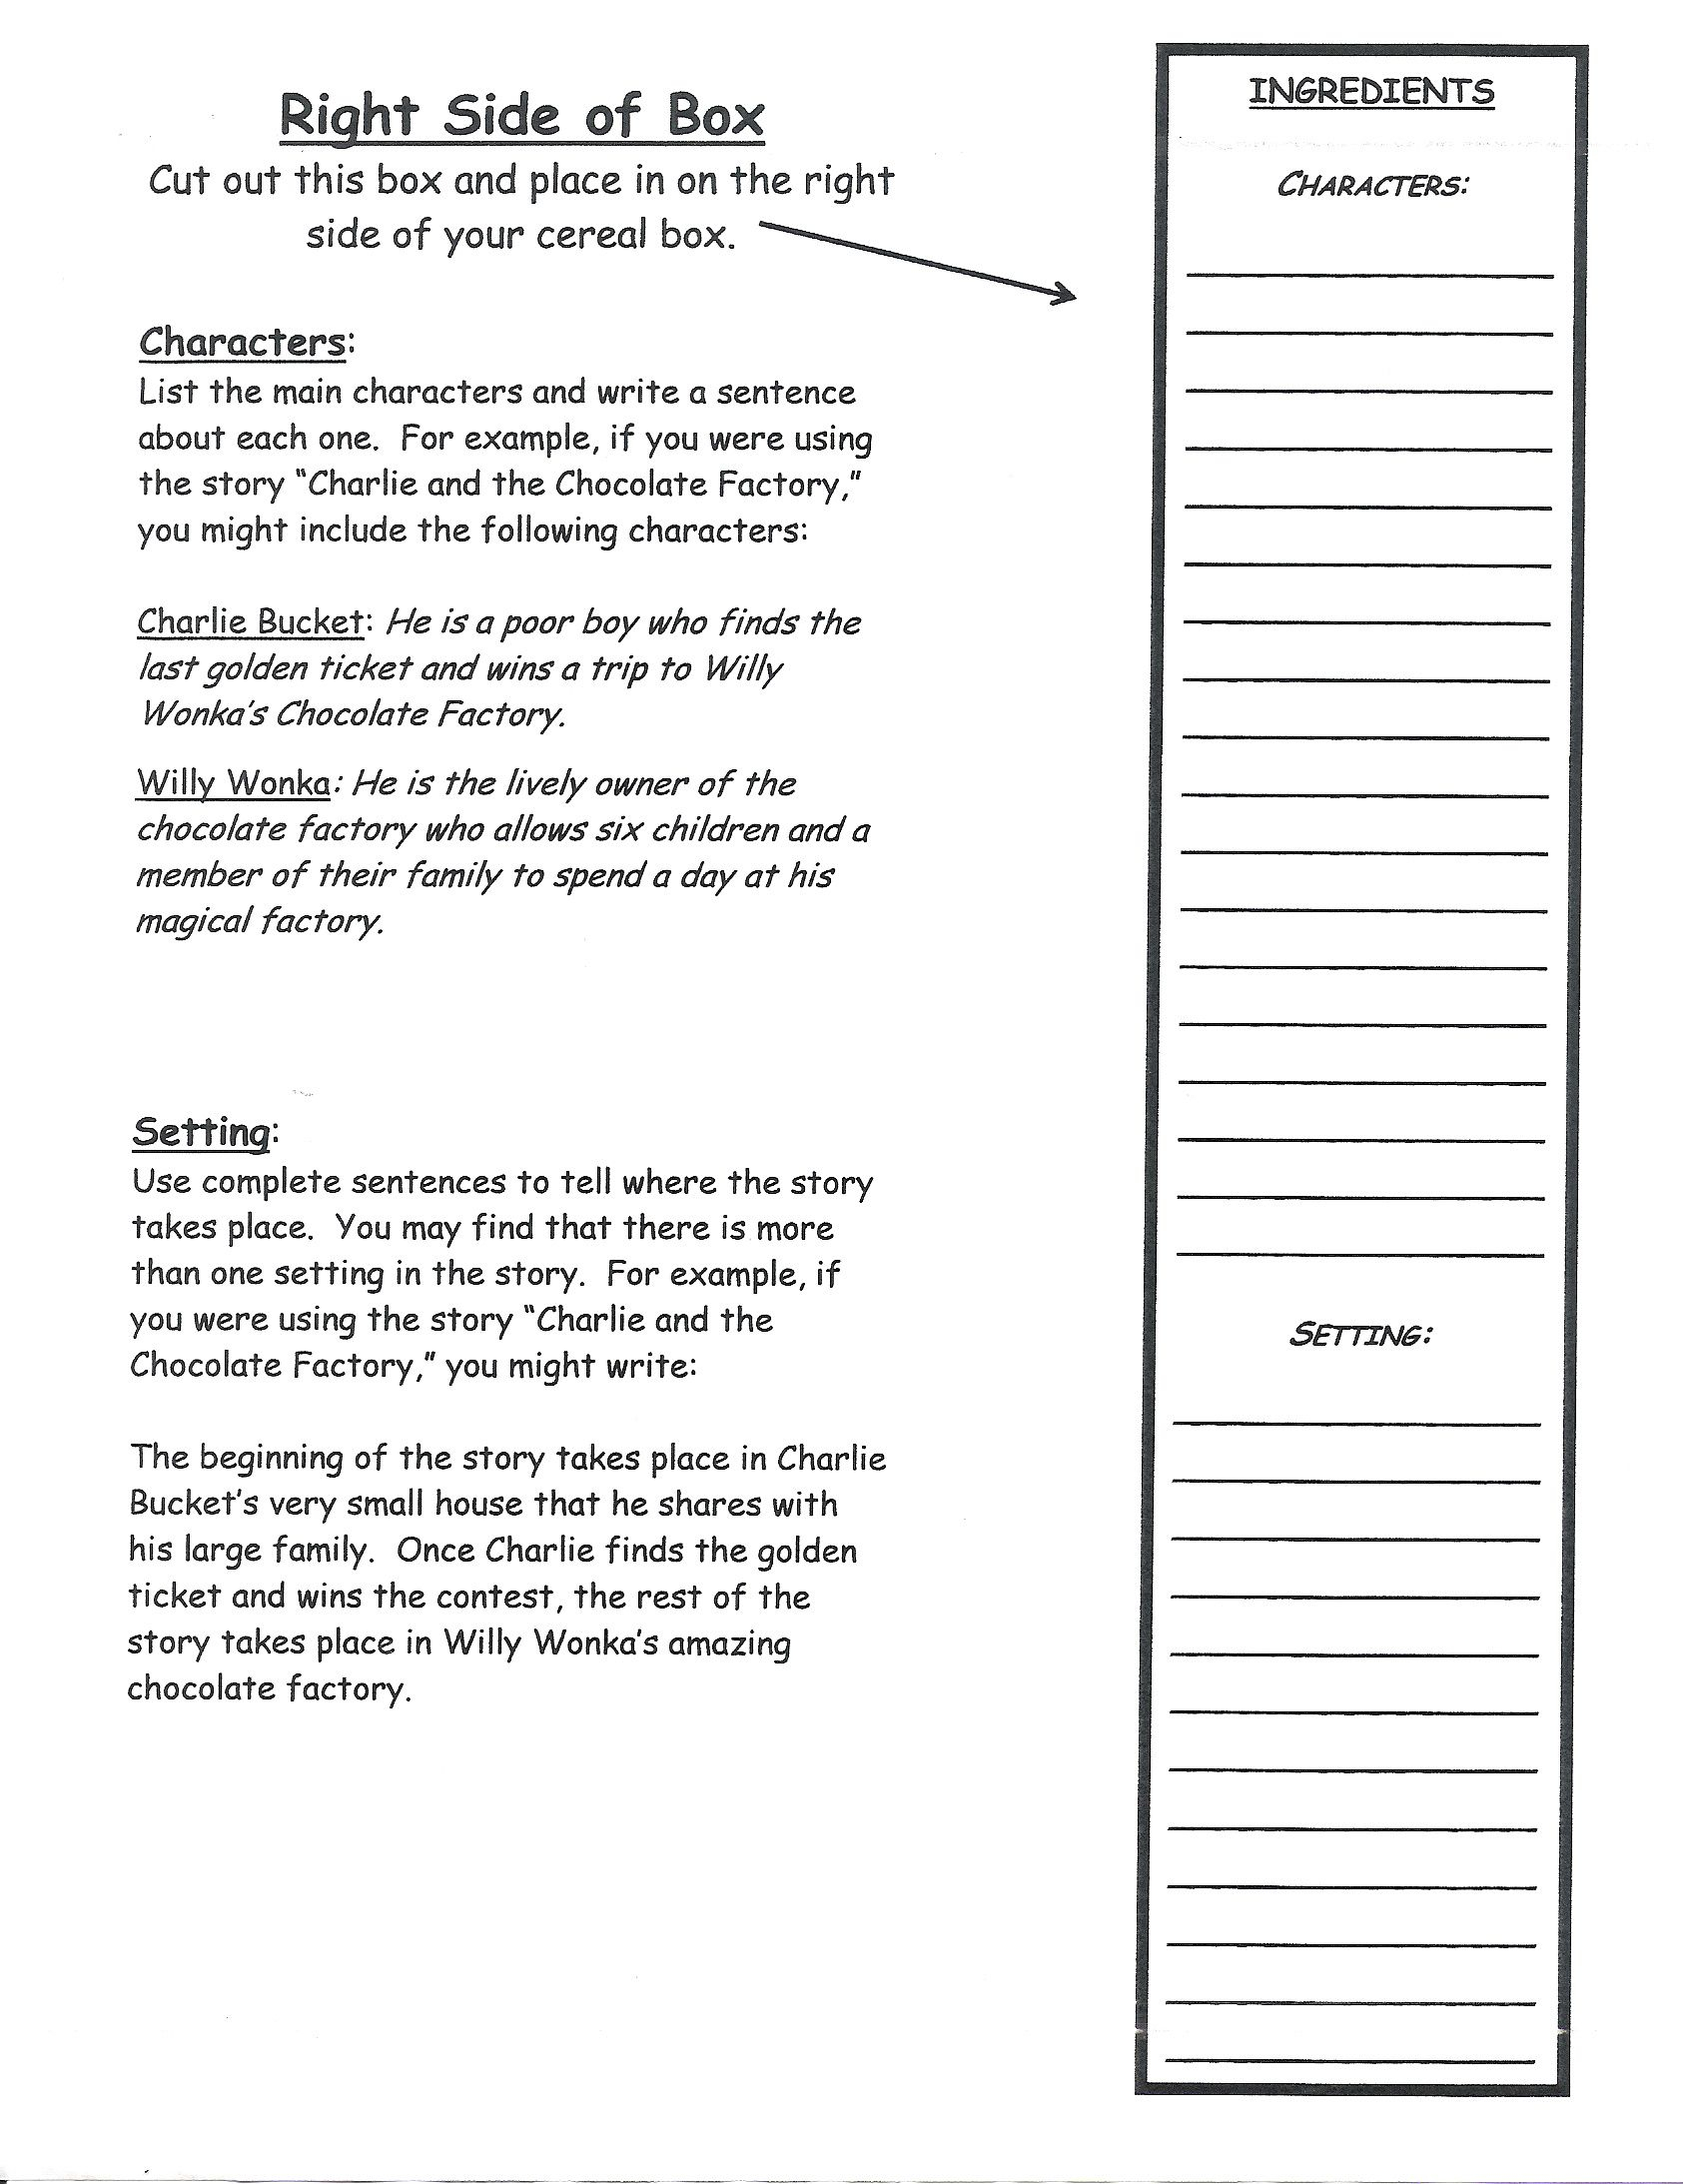 Cereal Box Book Report | Book Report Templates, Book Report Regarding Cereal Box Book Report Template